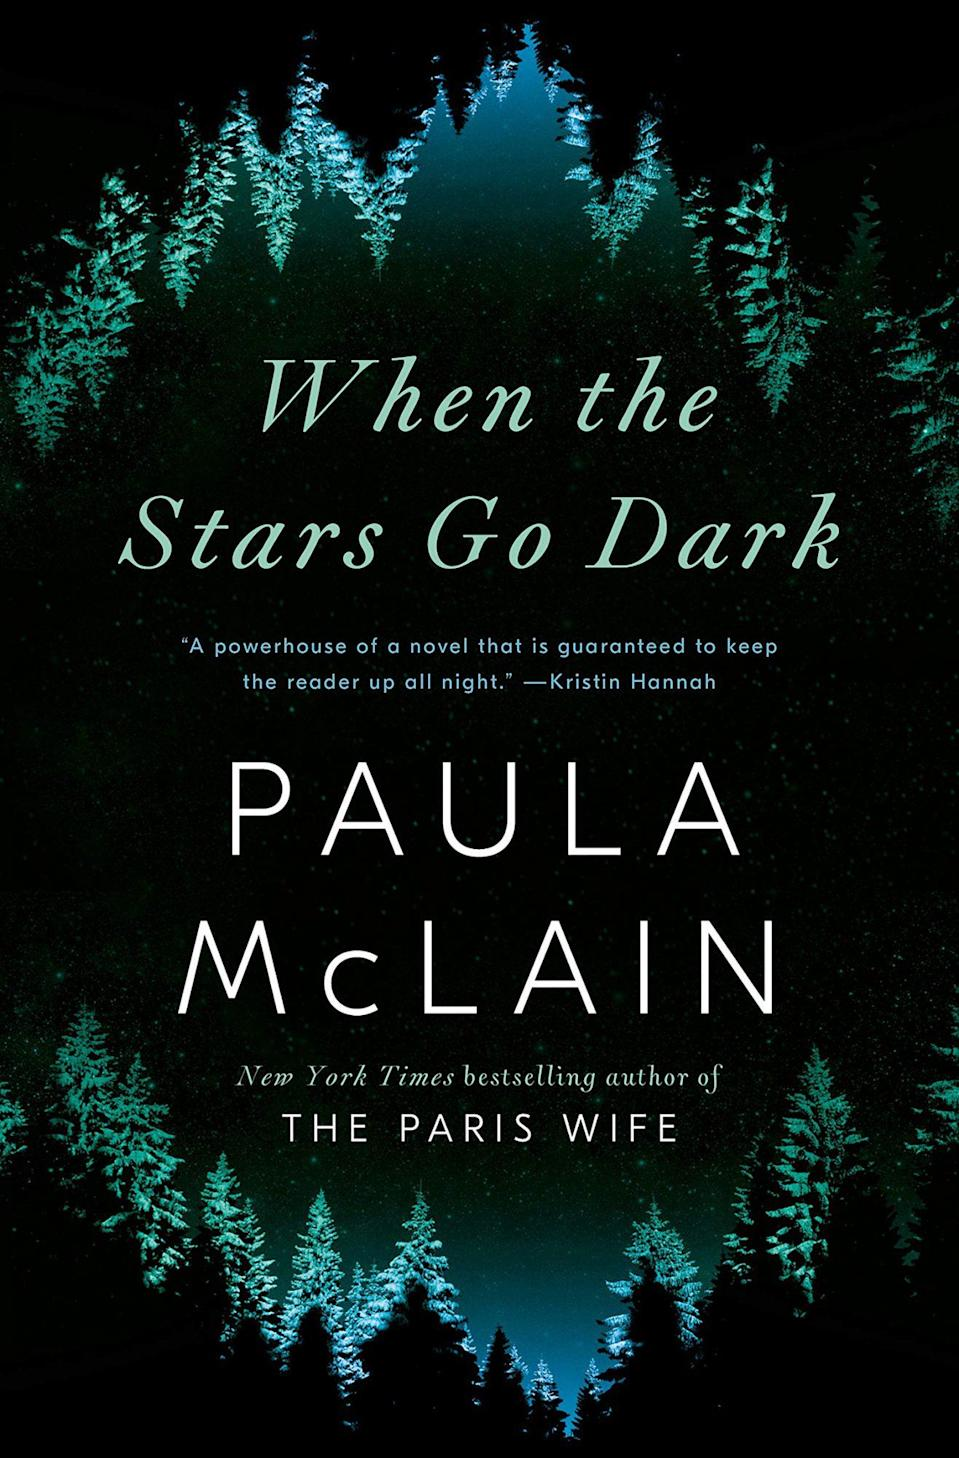 <p>The author of <em>The Paris Wife</em> harnesses heavy suspense for her fifth novel. A detective seeks refuge from a personal tragedy in Mendocino, the Northern California town where she spent her youth, when she confronts a missing persons case that harkens back to a traumatic disappearance from her past. (April 13)</p>